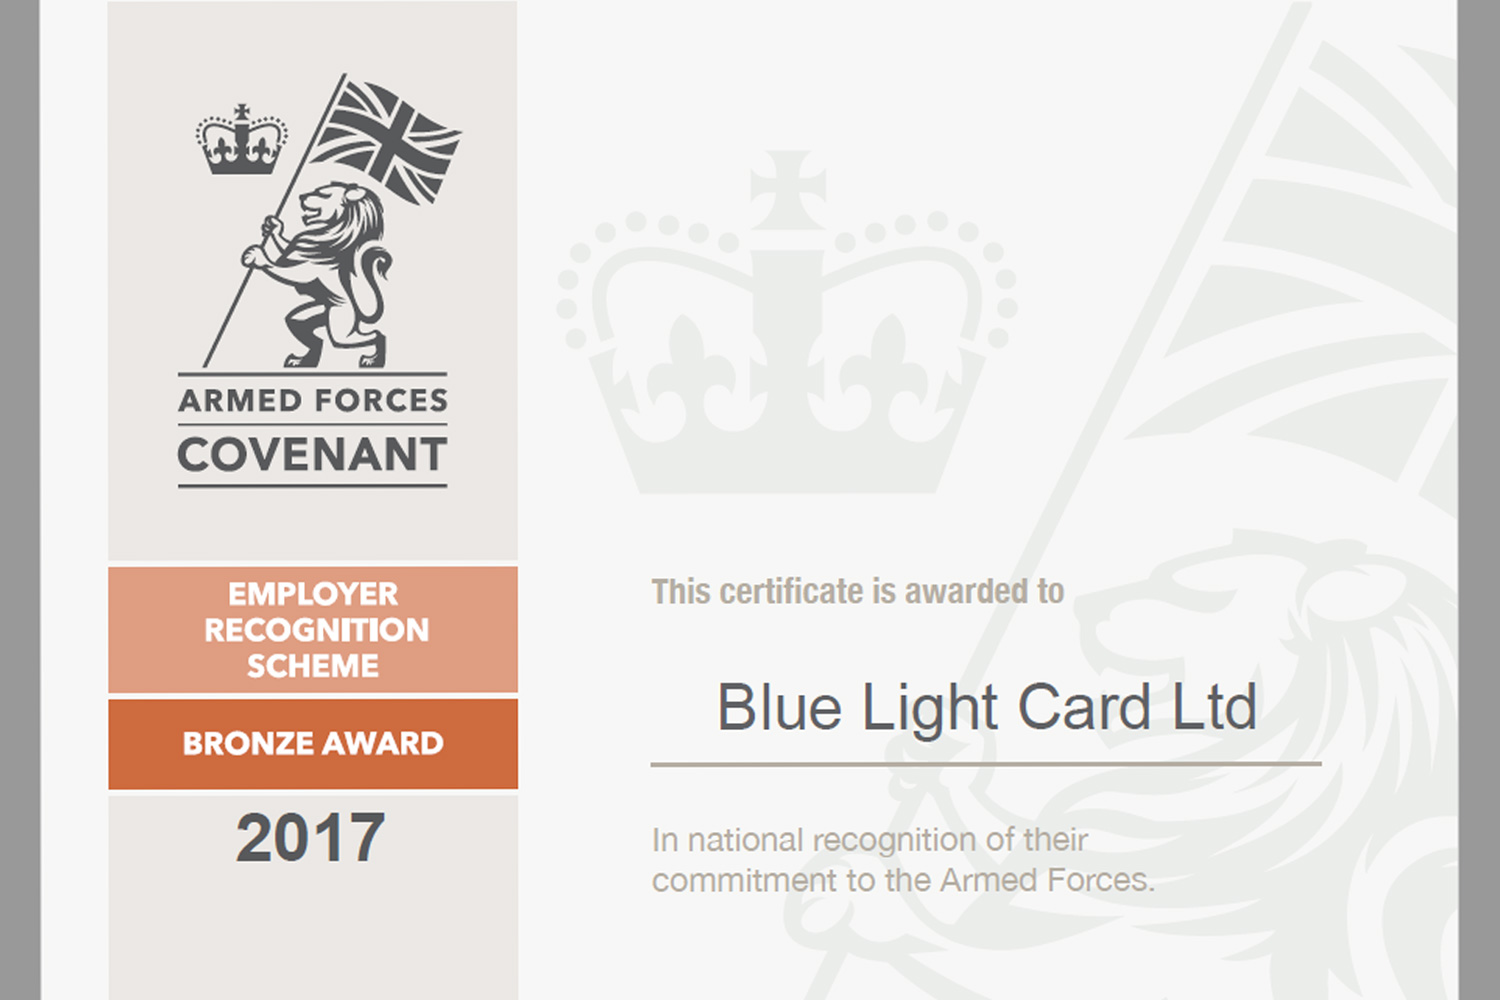 Armed Forces Covenant bronze award for BLC